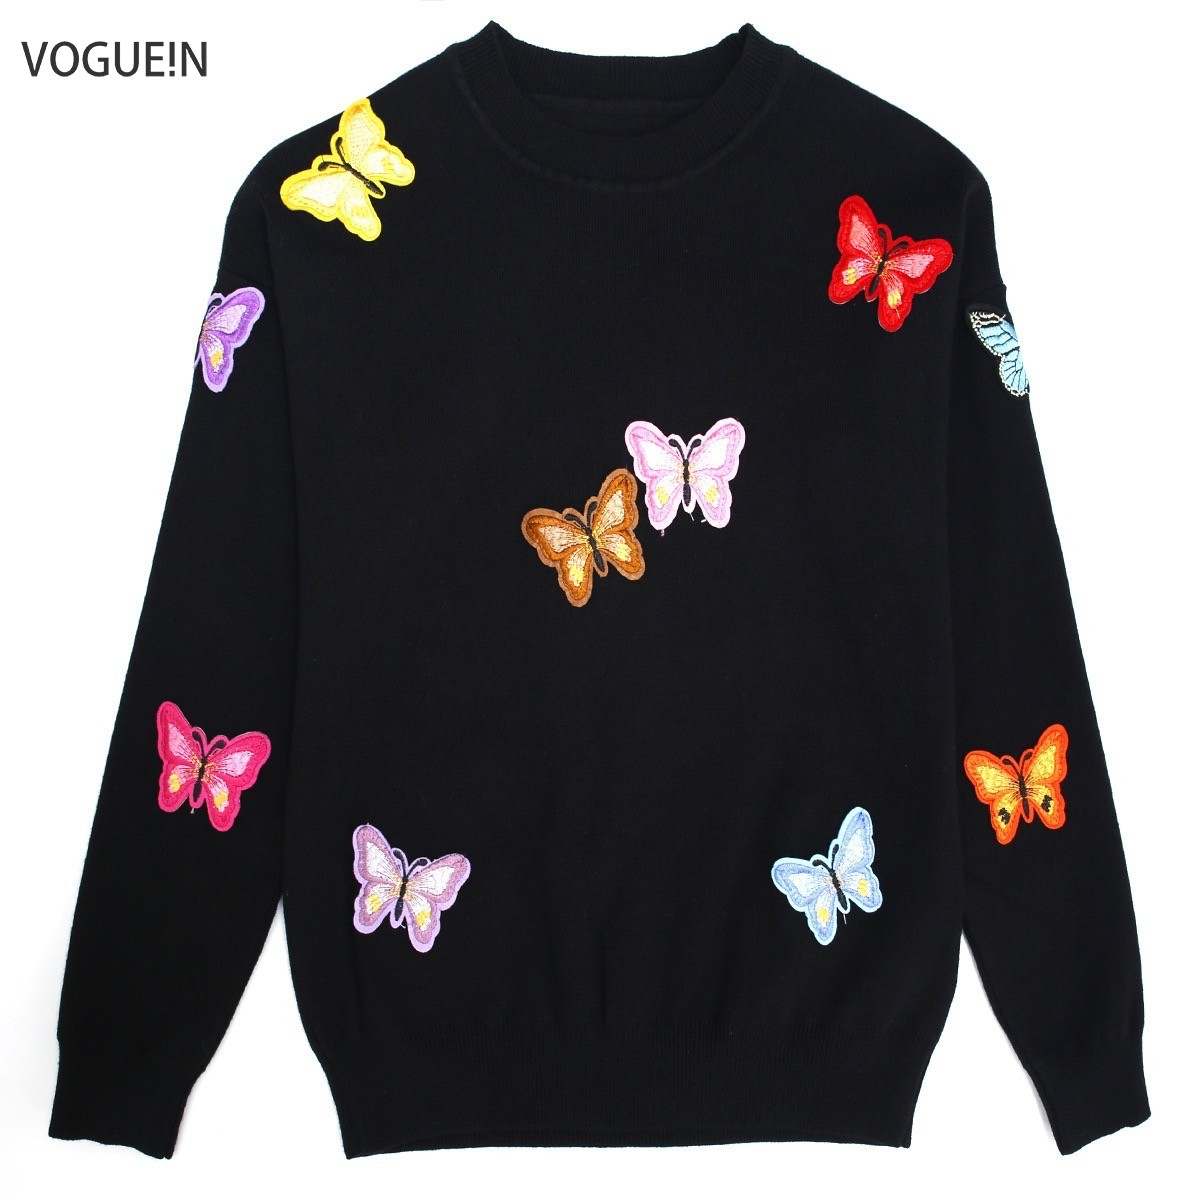 VOGUEIN  New Womens Fall Winter Butterfly Embroidered Applique Luxury Knitting Sweater Warm Pullover Tops Size SML Wholesale